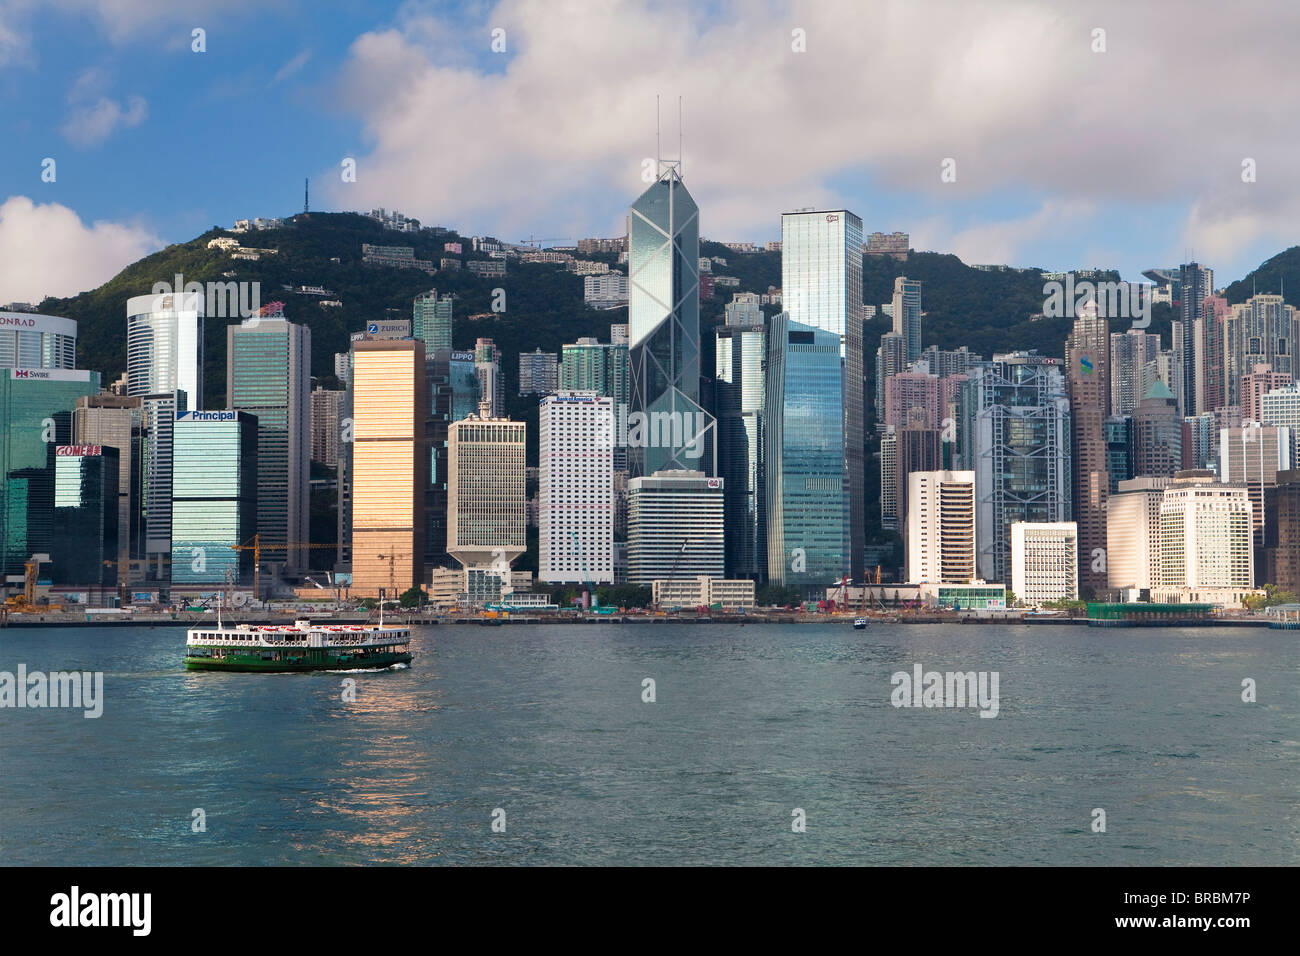 Skyline of Central, Hong Kong Island, from Victoria Harbour, Hong Kong, China - Stock Image